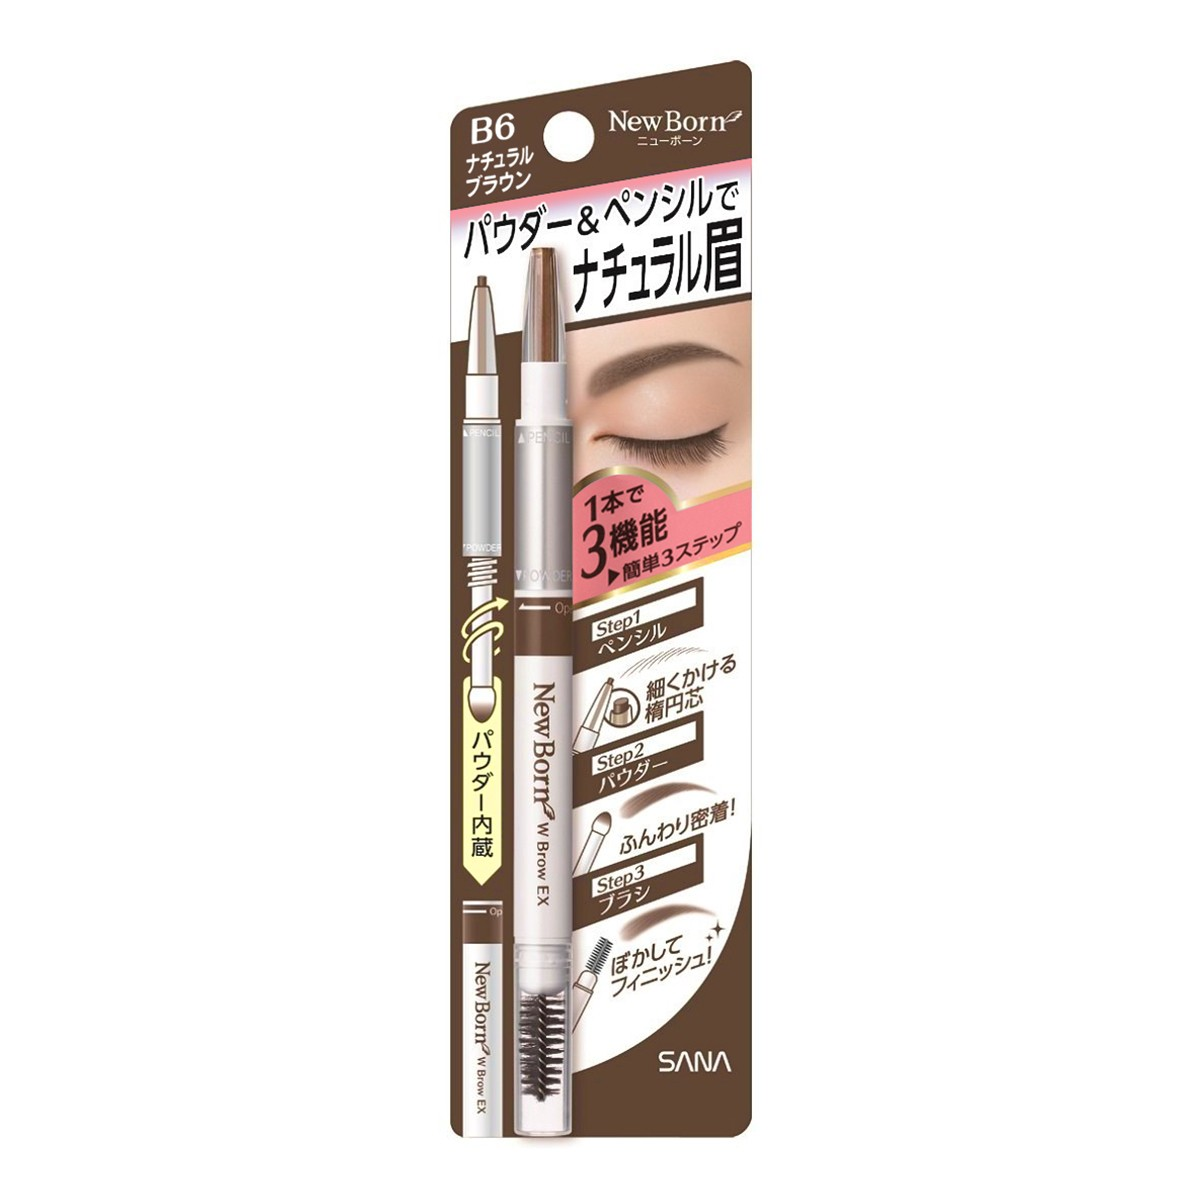 Yamibuy.com:Customer reviews:SANA NEW BORN EX Eyebrow Mascara And Pencil #B6 Natural Brown 1pc